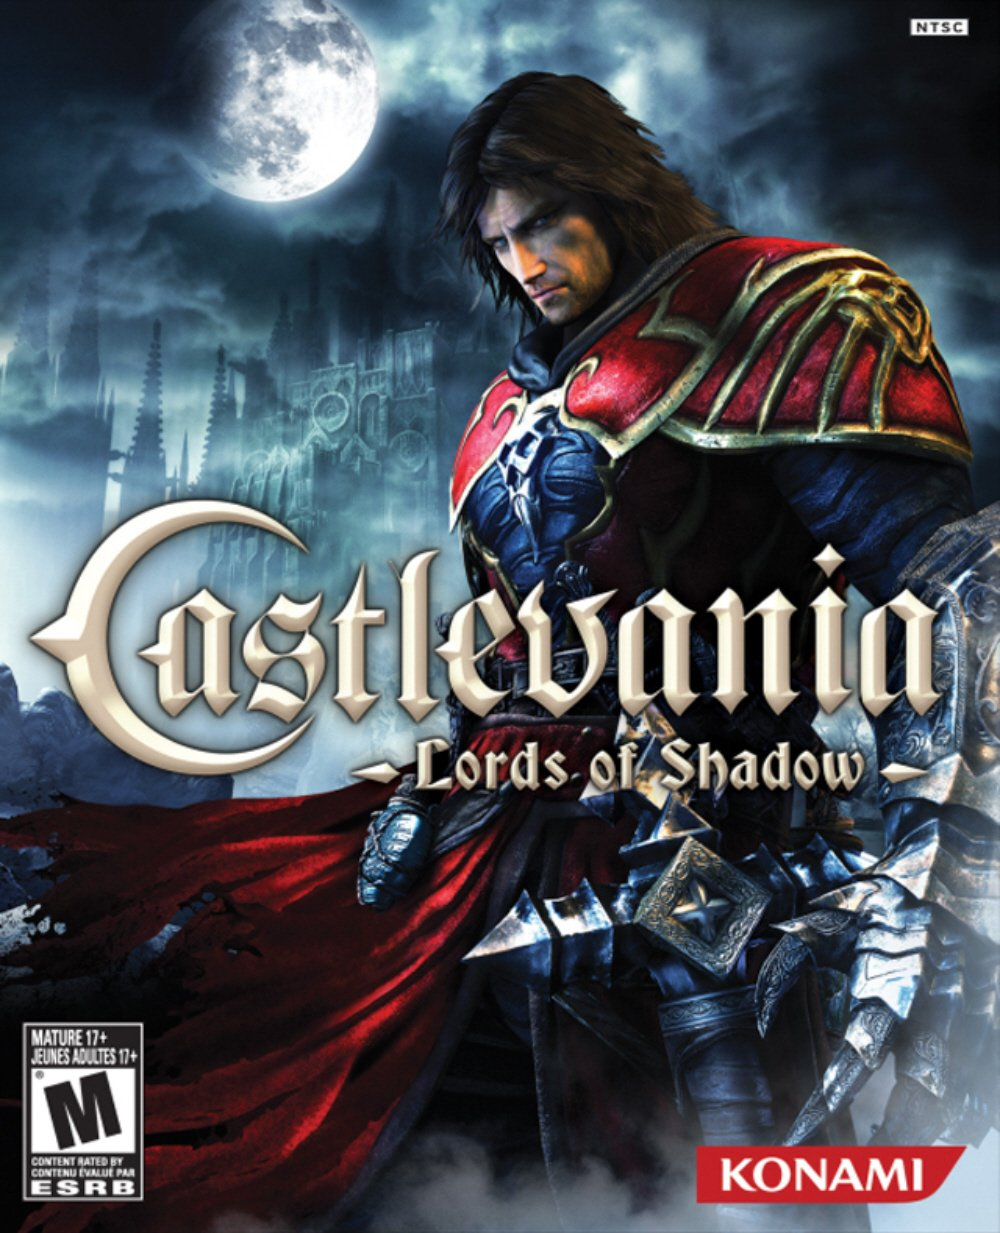 Castlevania: Lords of Shadow (XBOX 360) Review 3